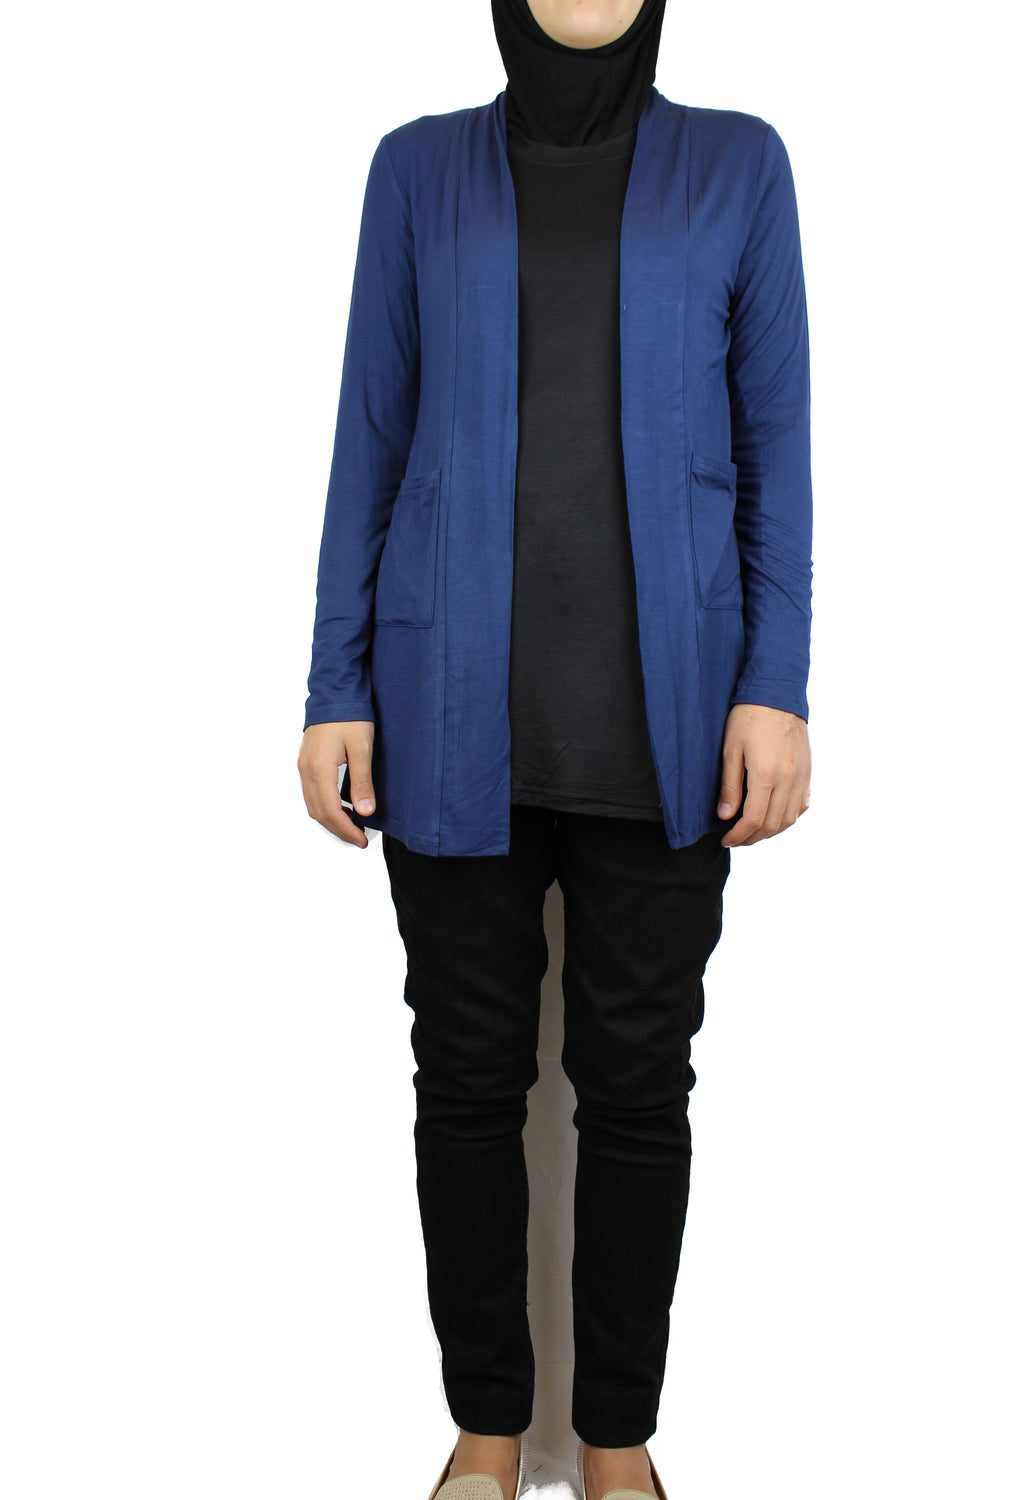 Open Front Cardigan with Pockets - Navy Blue